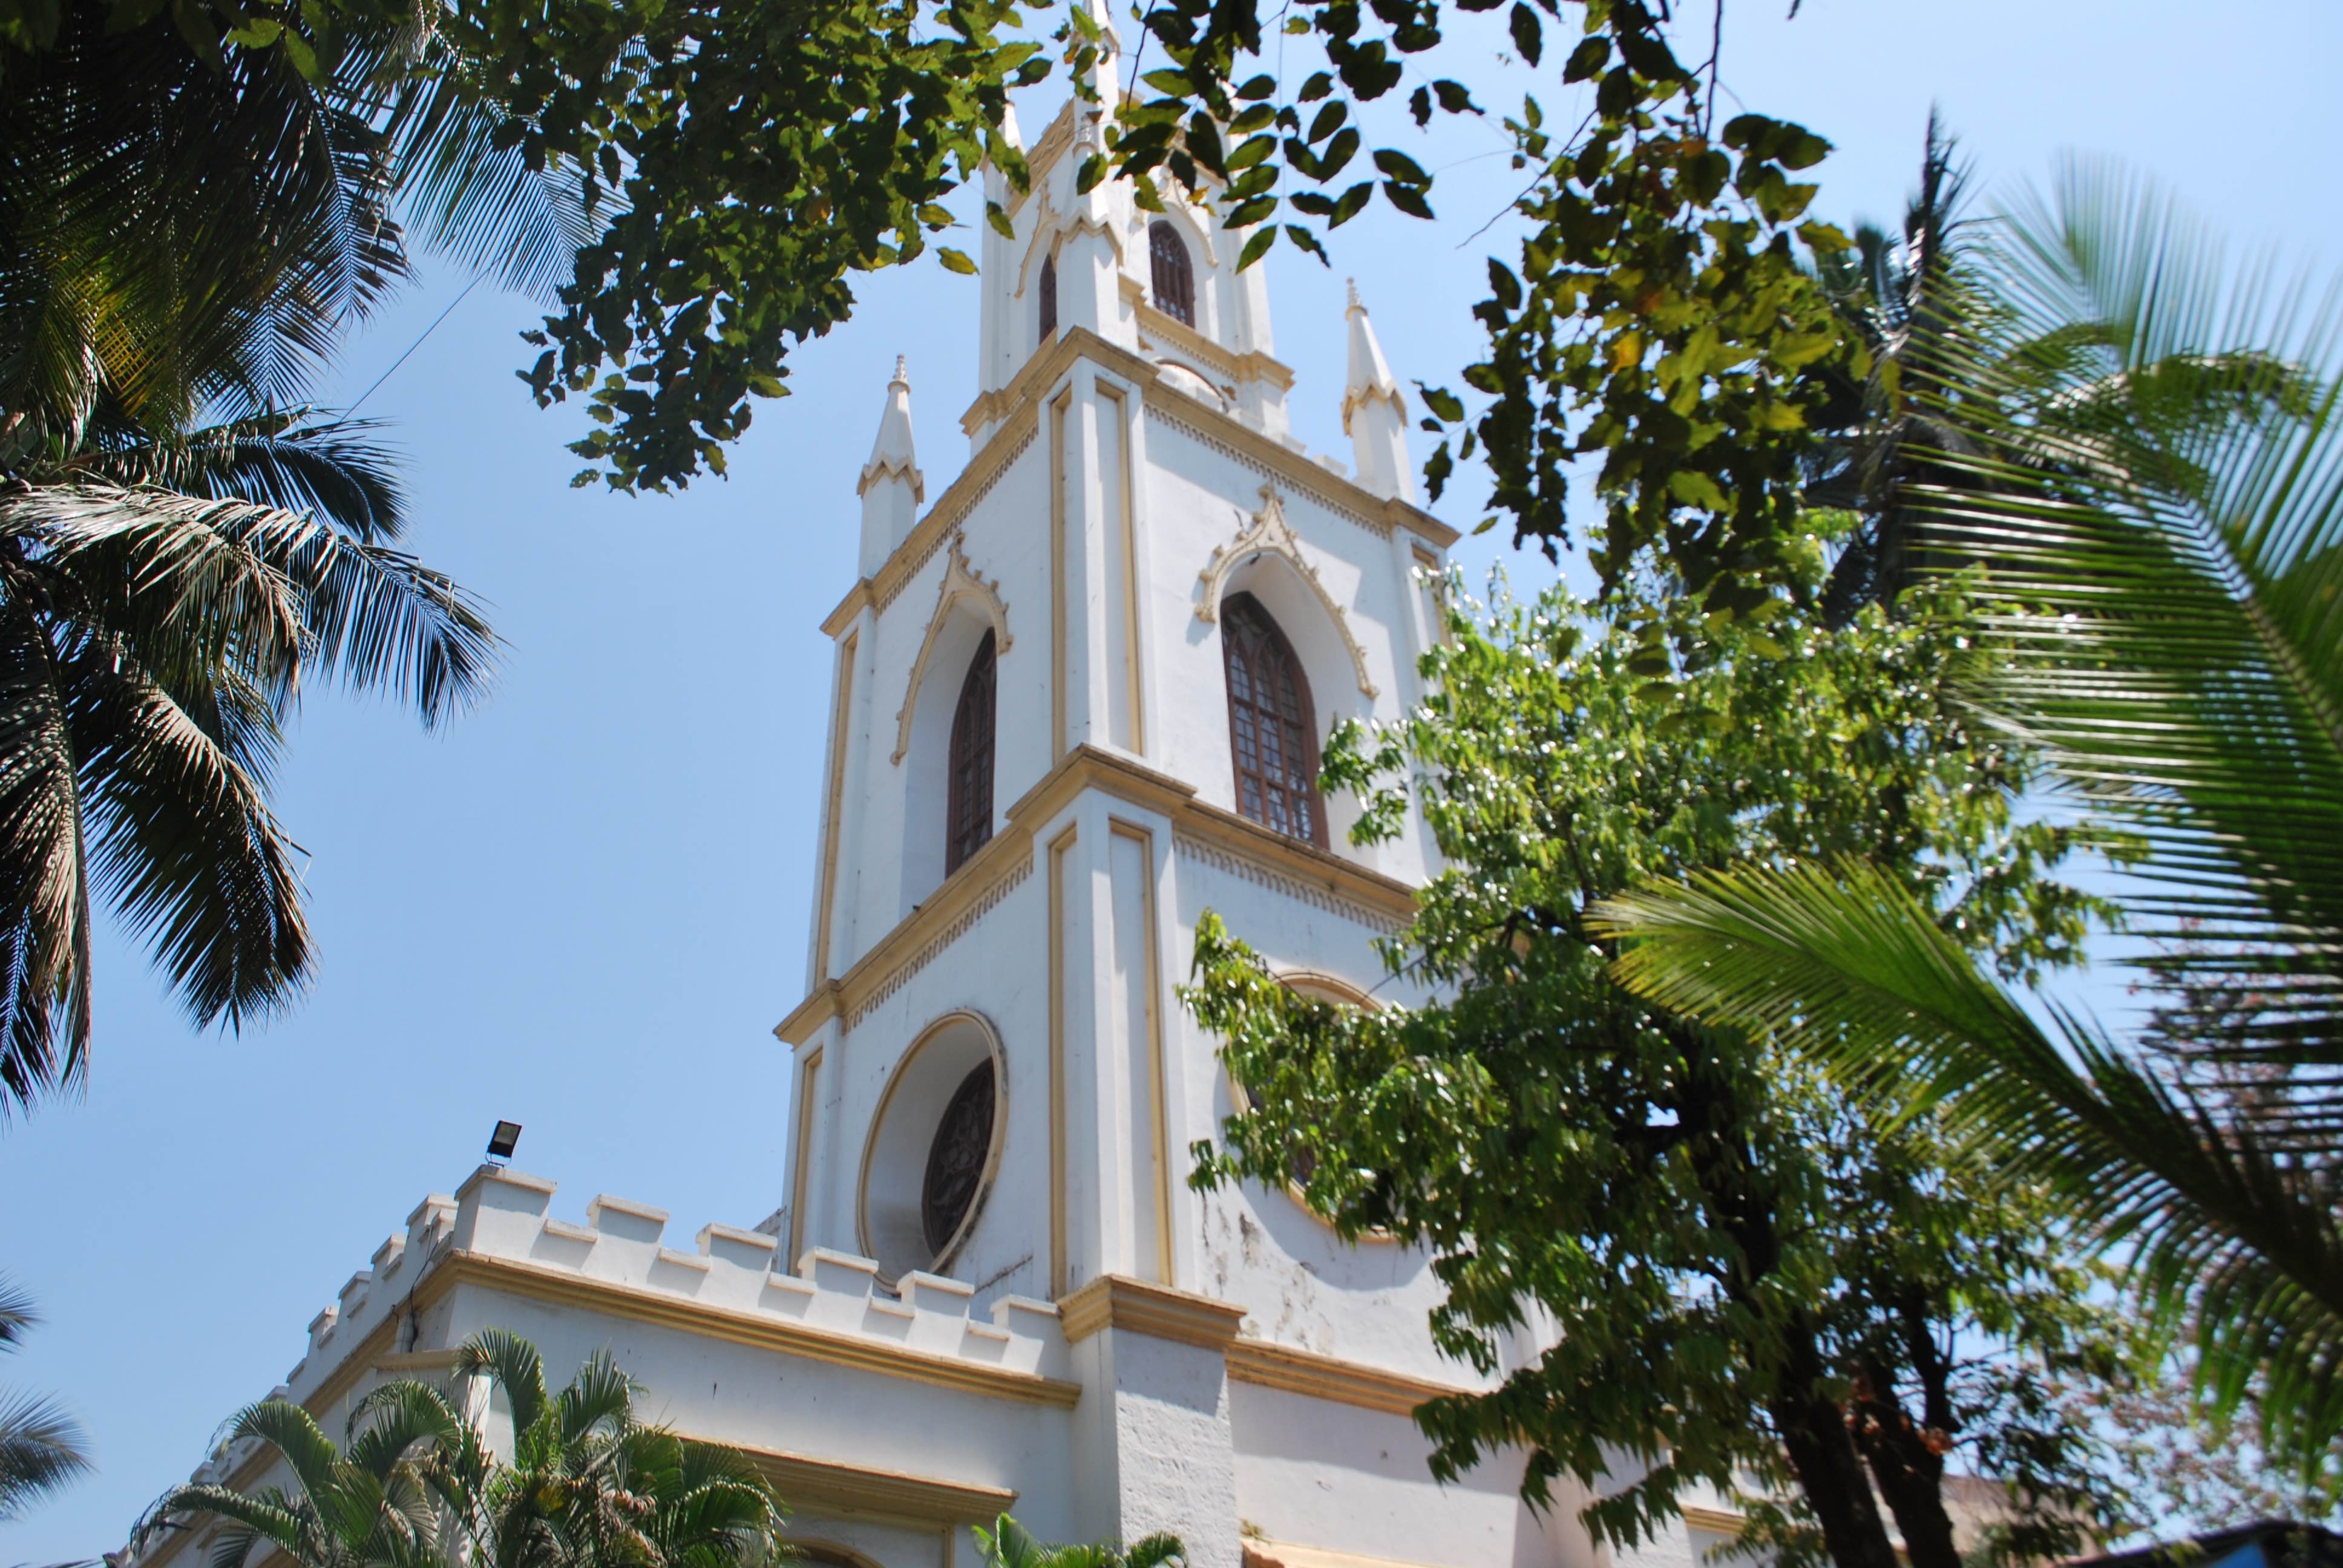 The Mumbai Cathedral That Has Stood Witness to the City's History